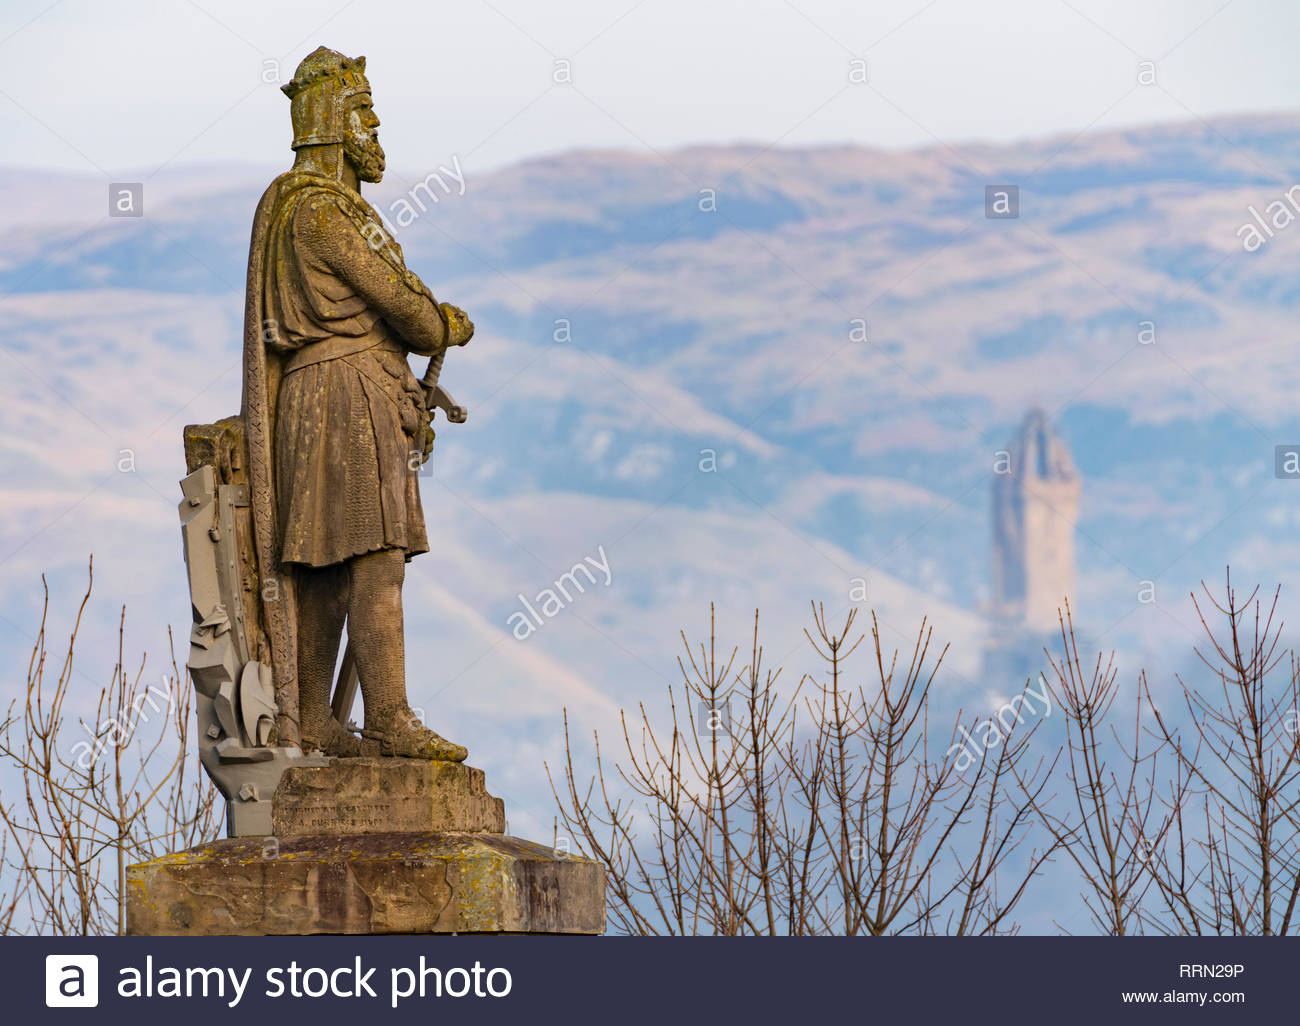 Statue of King Robert the Bruce at Stirling Castle, Stirling, Scotland, UK - Stock Image